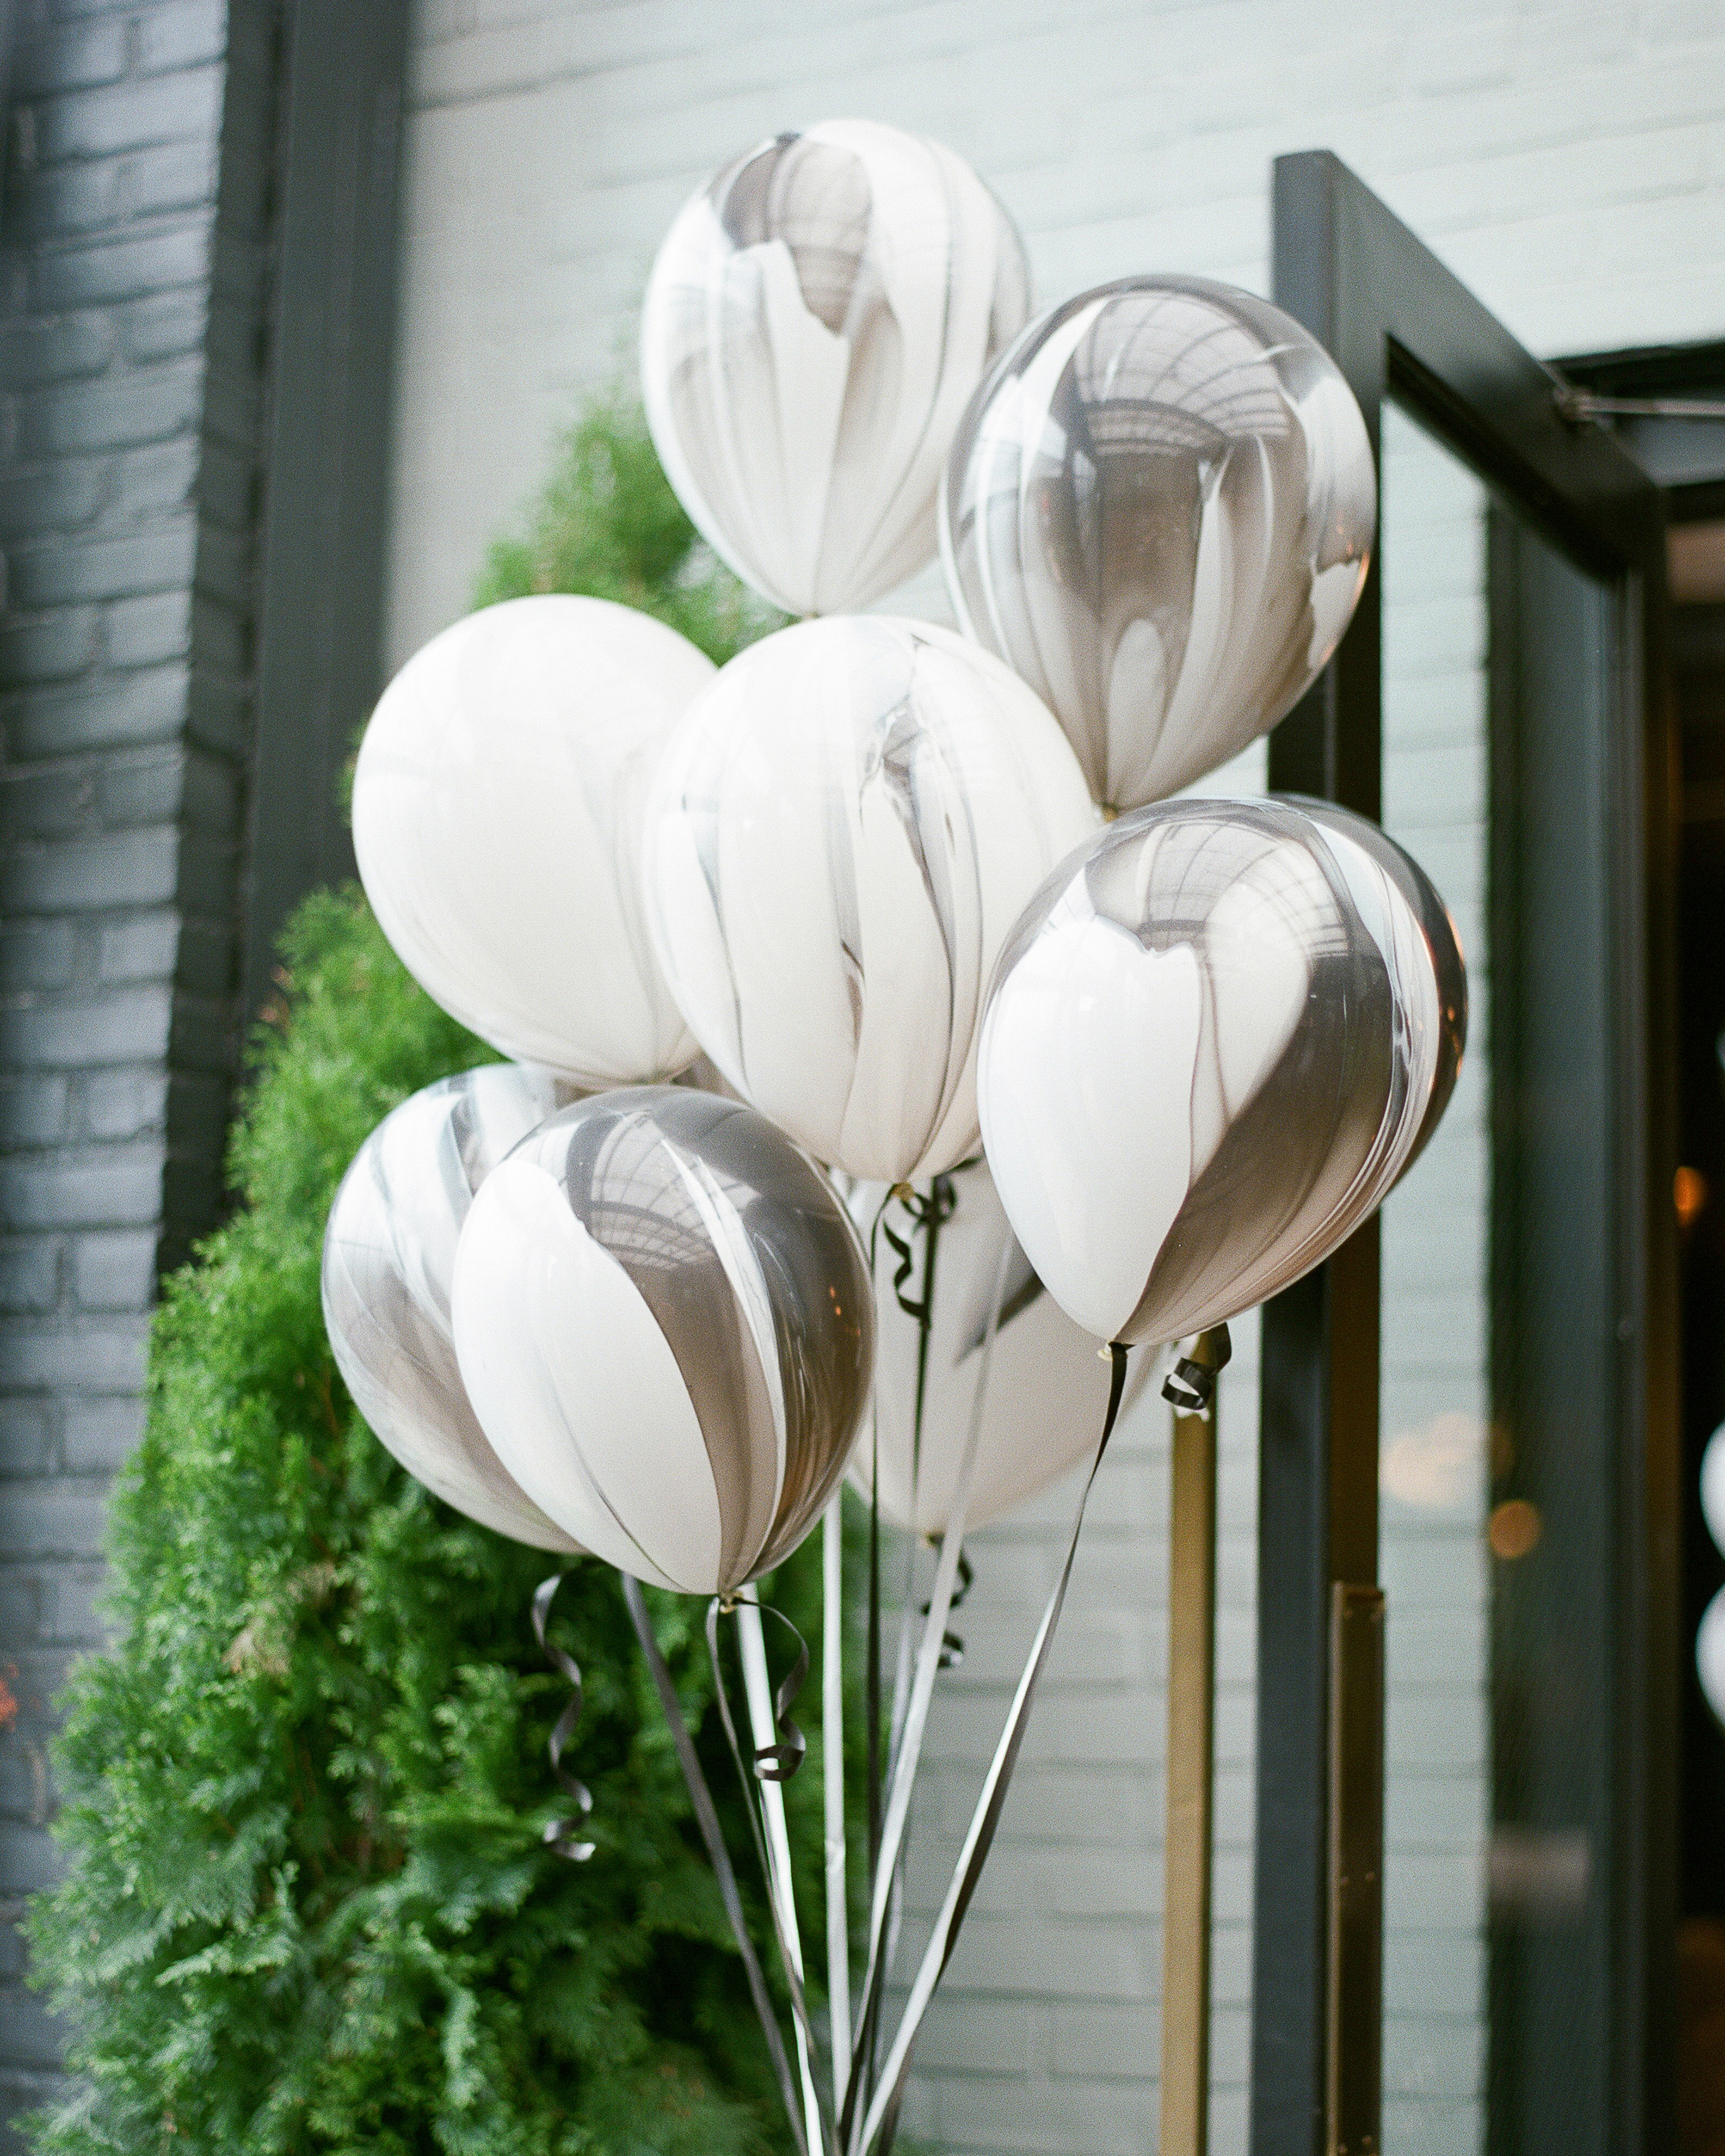 ashley-jonathon-wedding-balloons-45-s111483-0914.._sqjpg